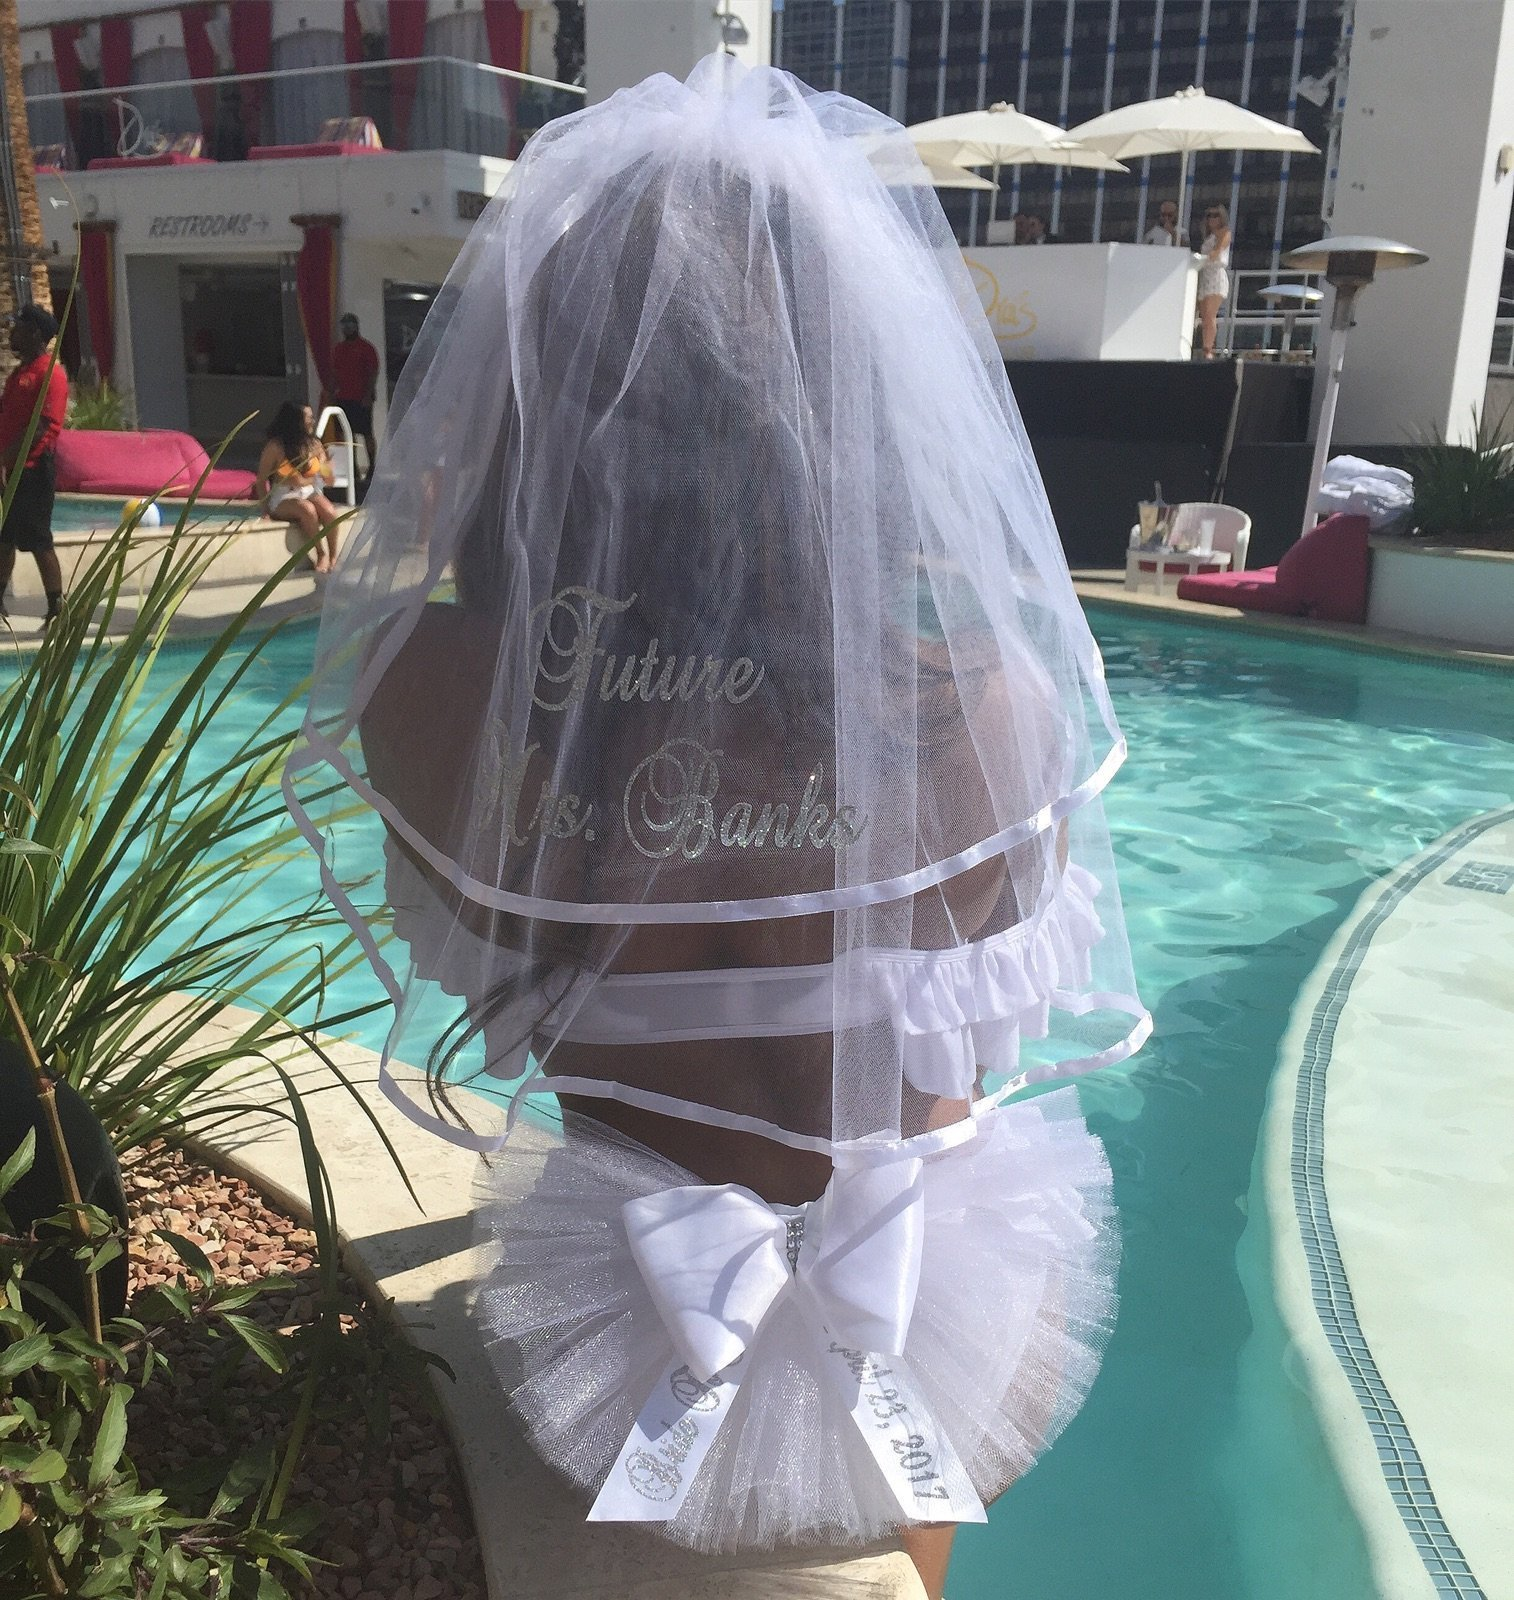 Booty Veil and Hair Veil (Booty Cover, Bikini Veil, Butt Veil) PERSONALIZED 2 piece set for only $55. this is an $60.00 VALUE (if purchased separately)